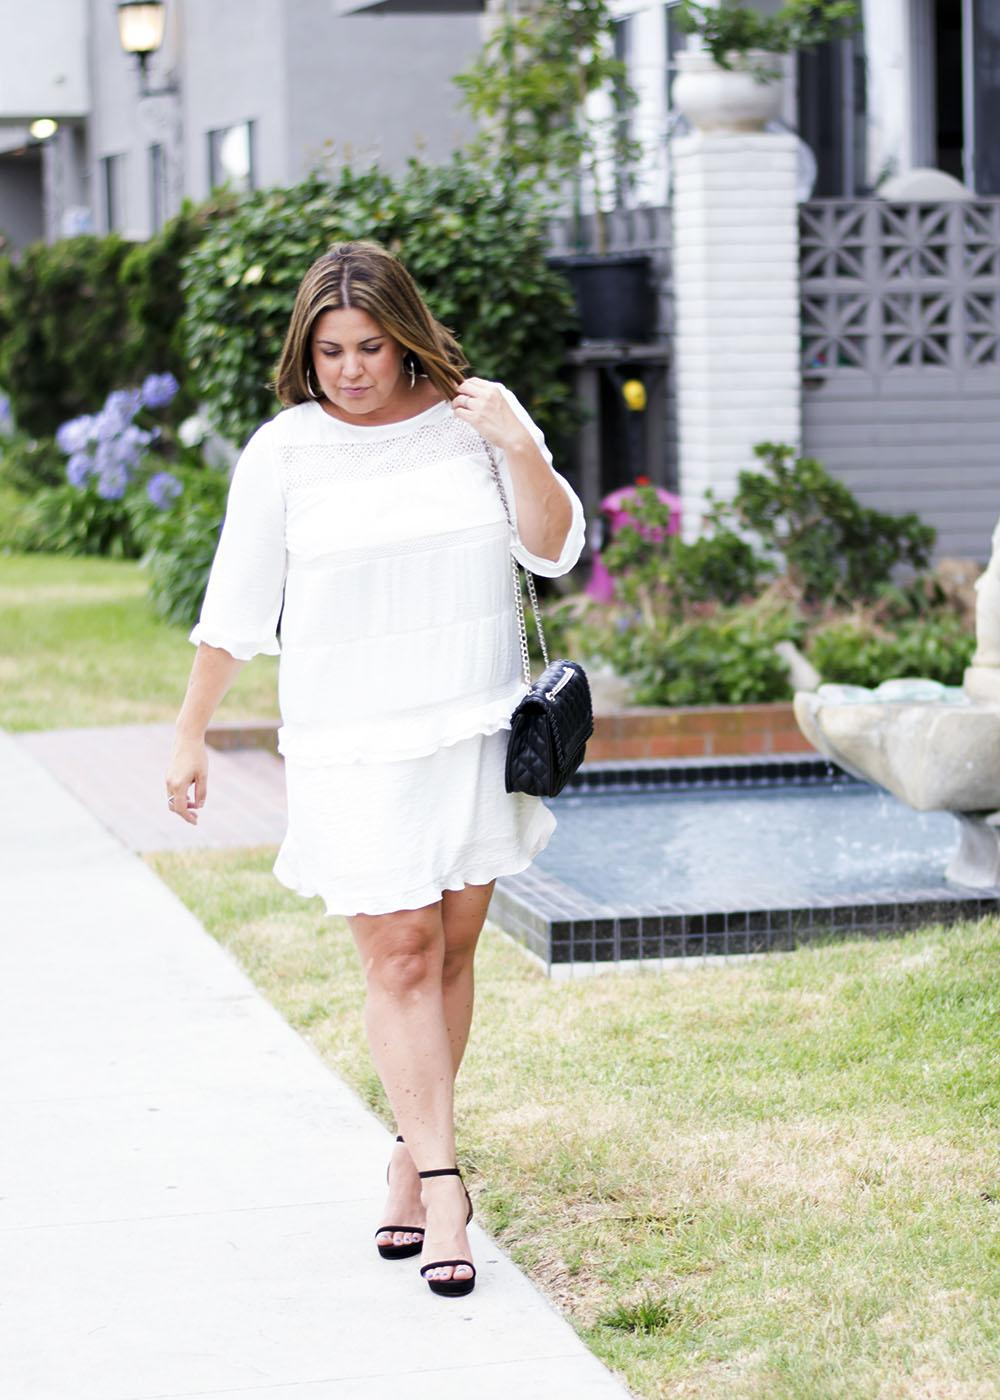 Dressy Outfit Los Angeles Fashion Street Style Blogger Personal Stylist White Ruffled Dress Who What Wear 0584